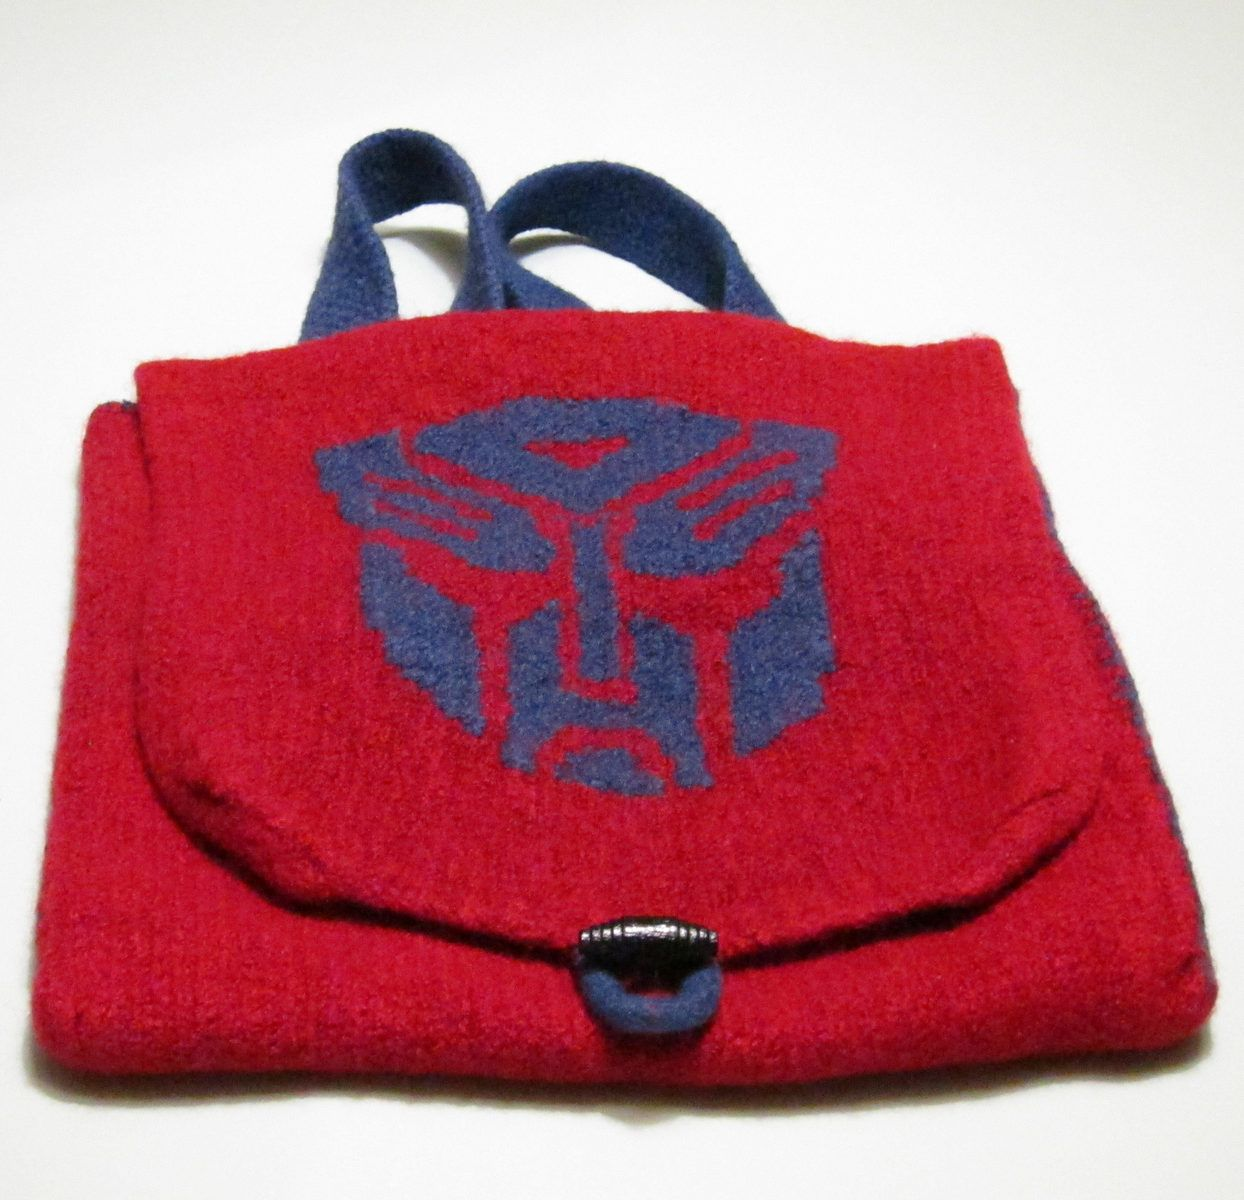 Free knitting pattern for transformers backpack felted backpack free knitting pattern for transformers backpack felted backpack with large flap and autobot motif bankloansurffo Gallery